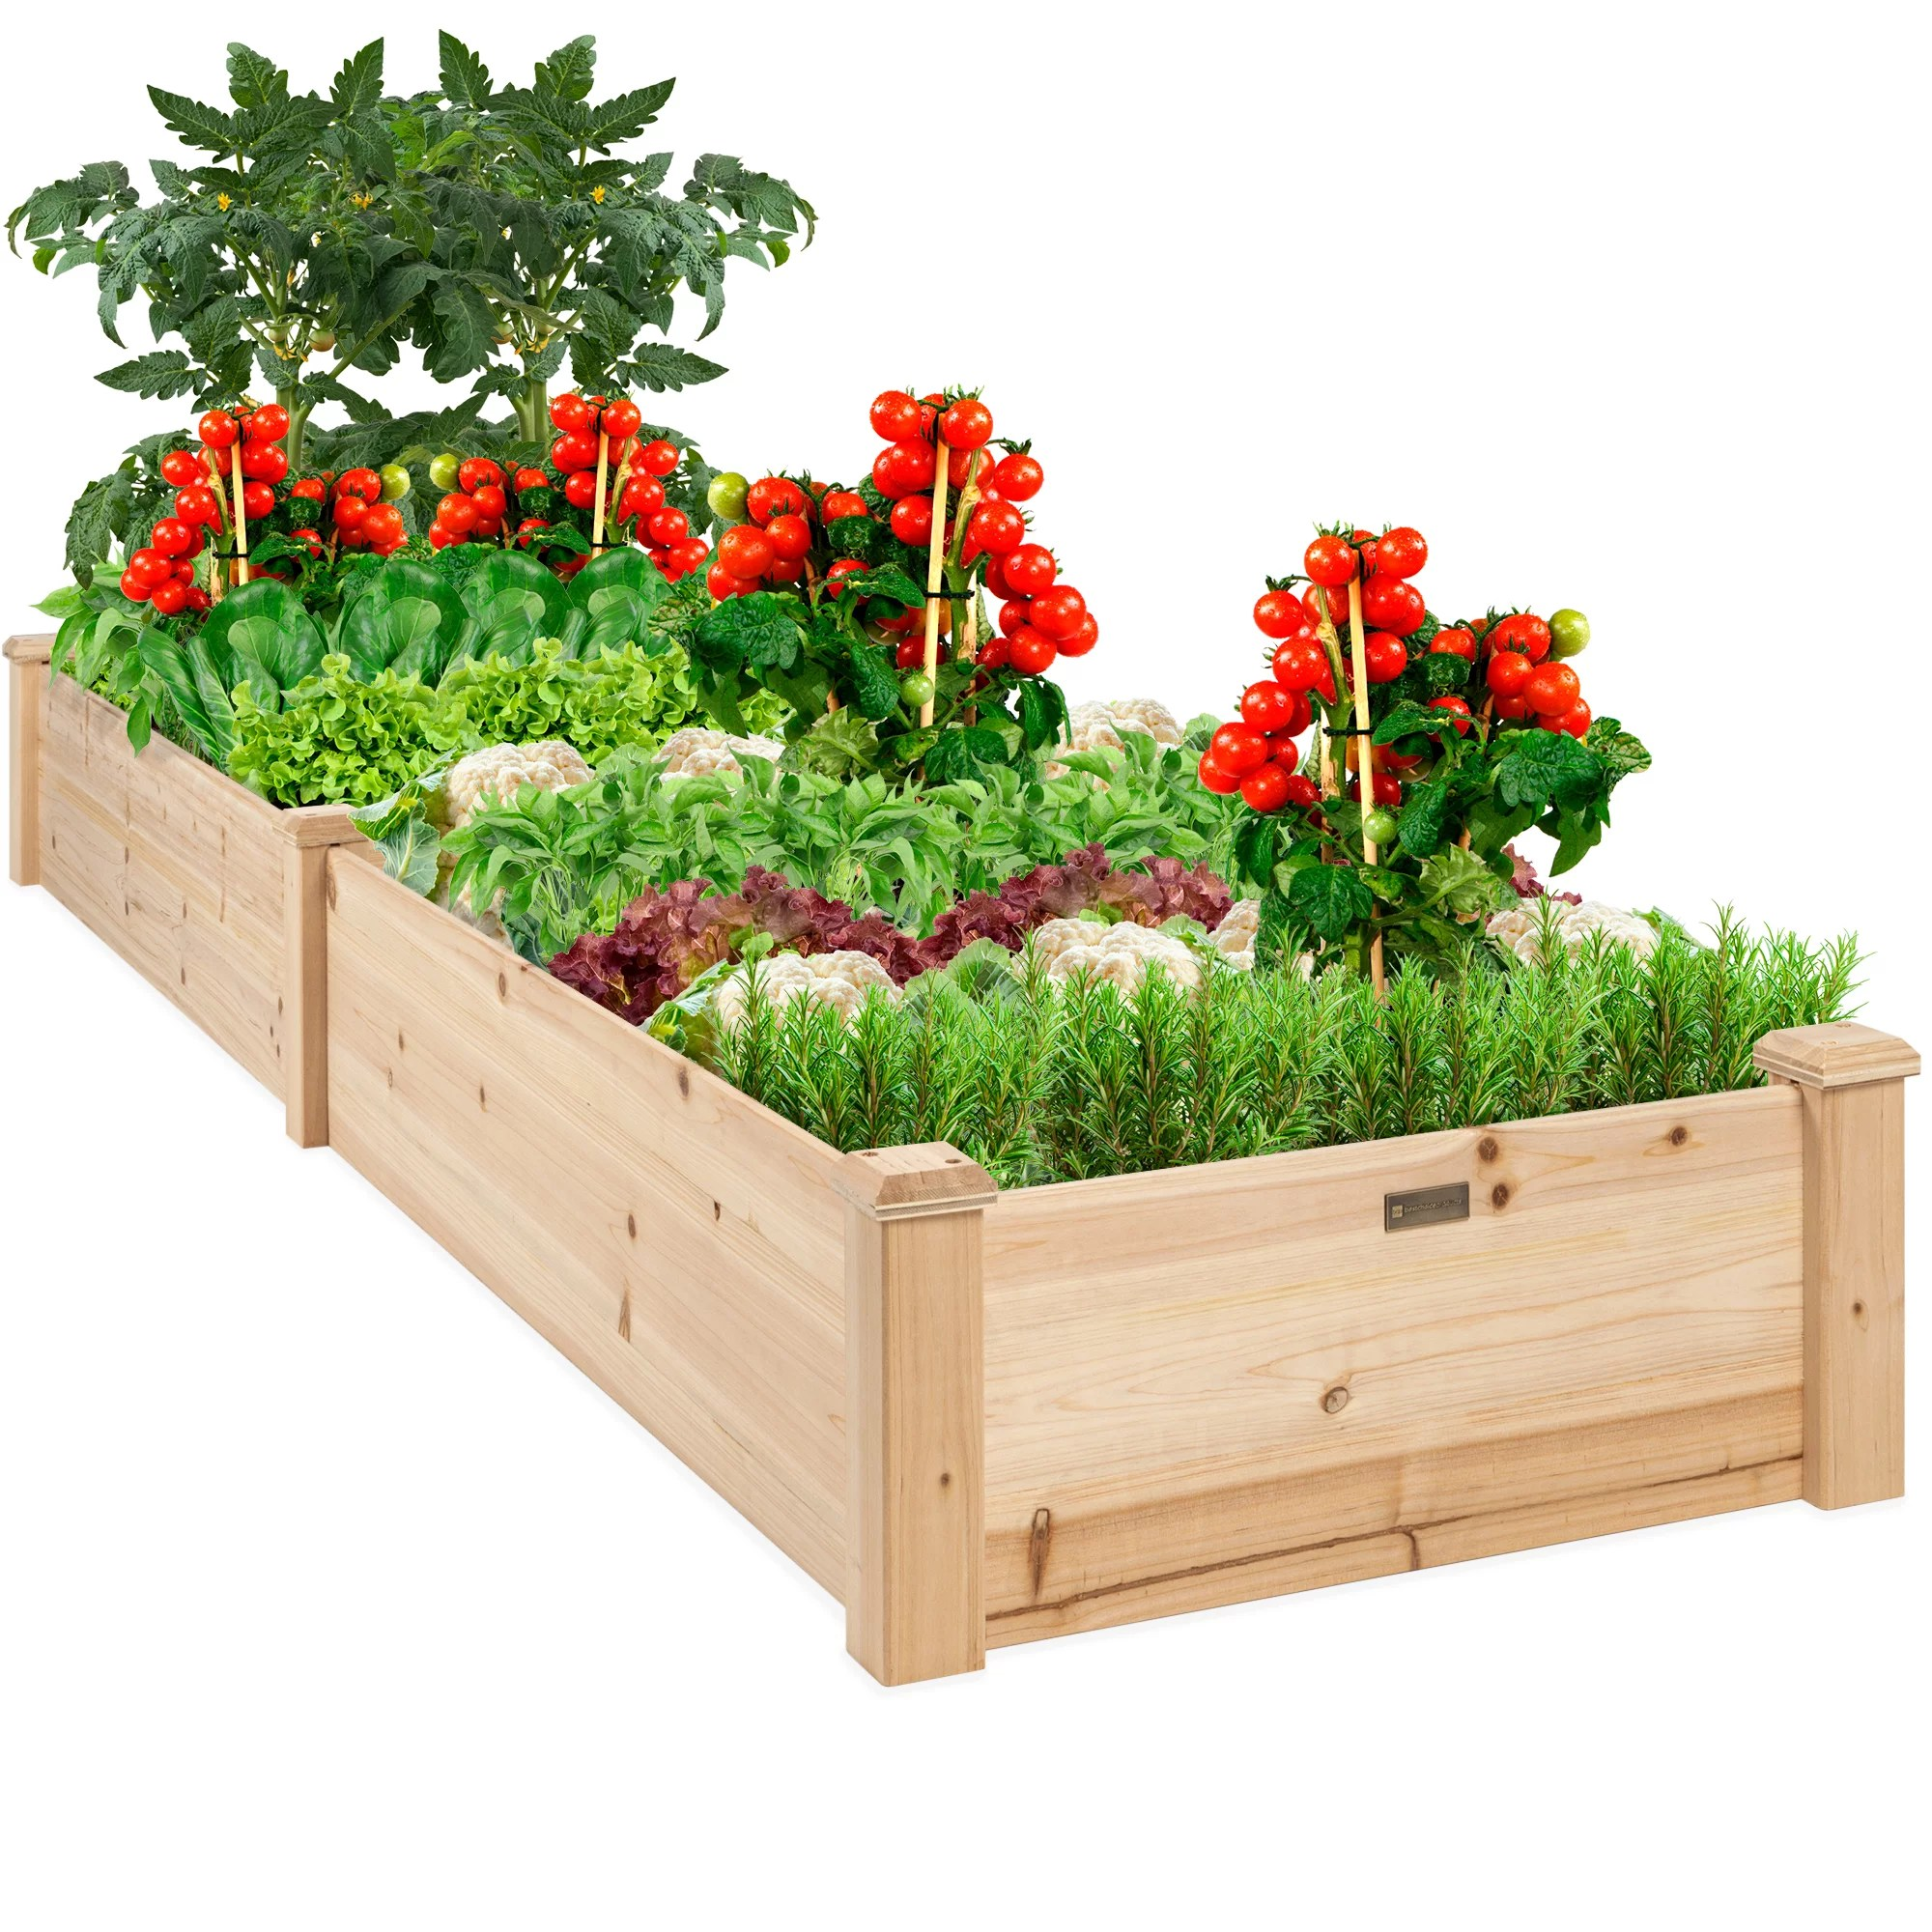 best choice products 8x2ft outdoor wooden raised garden bed planter for grass lawn yard natural walmart com